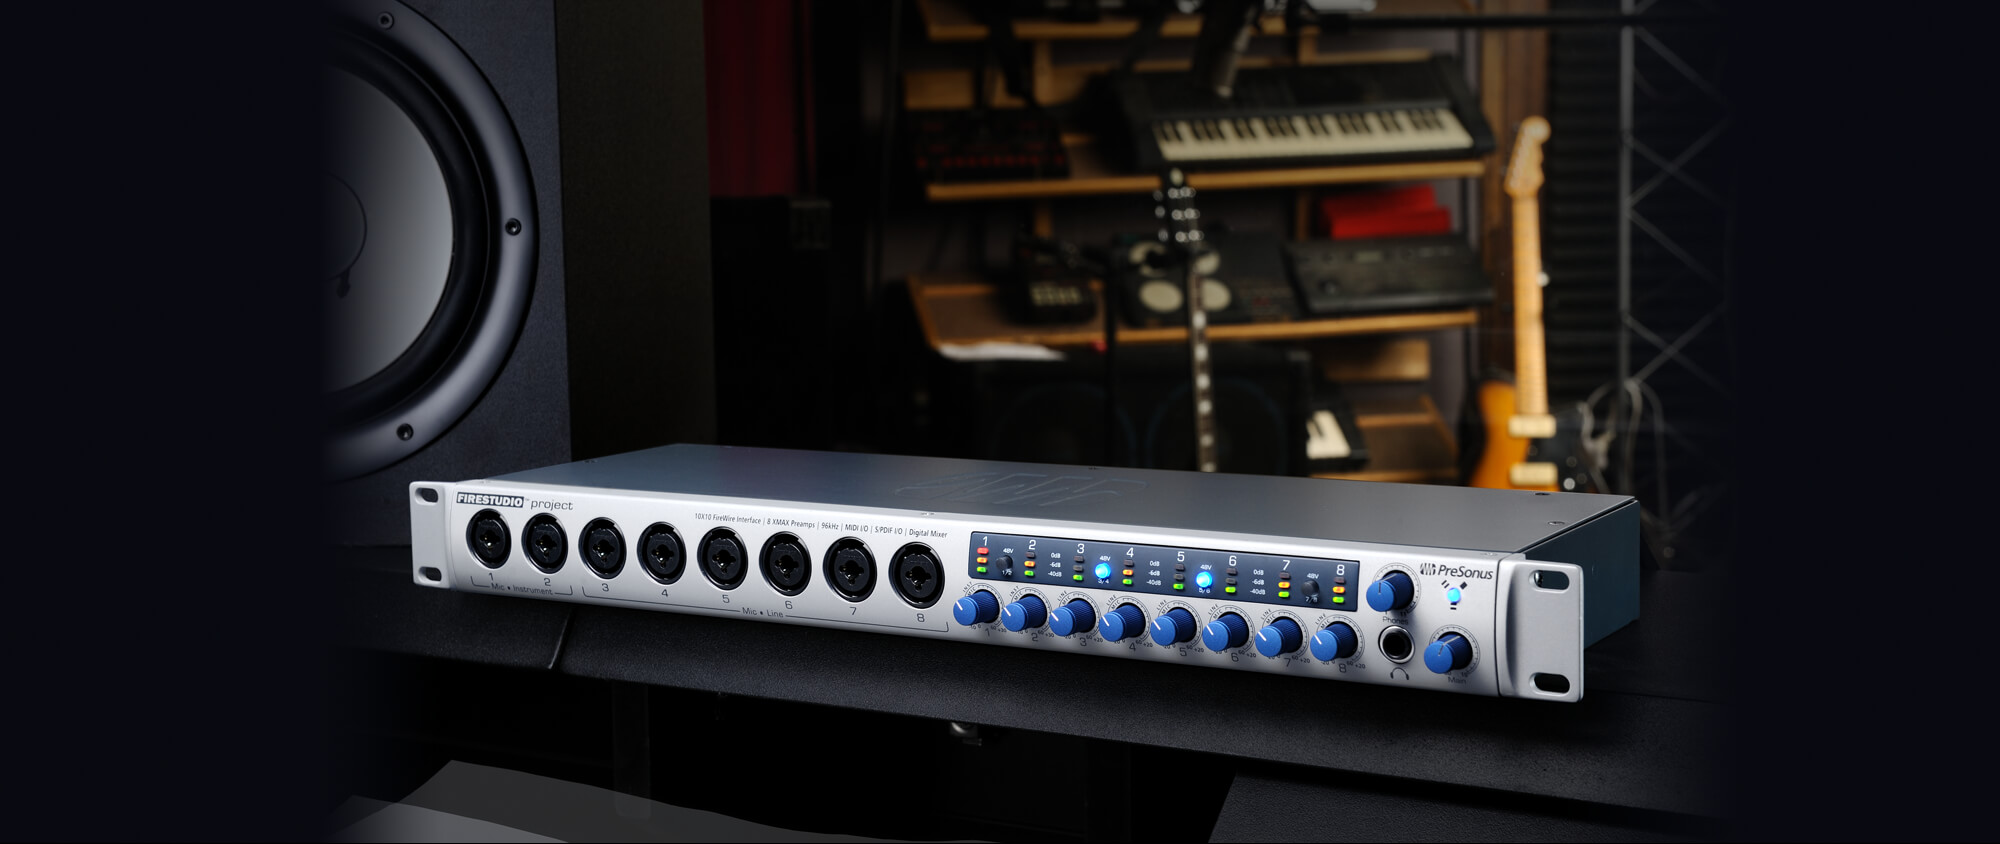 Presonus firestudio project hookup